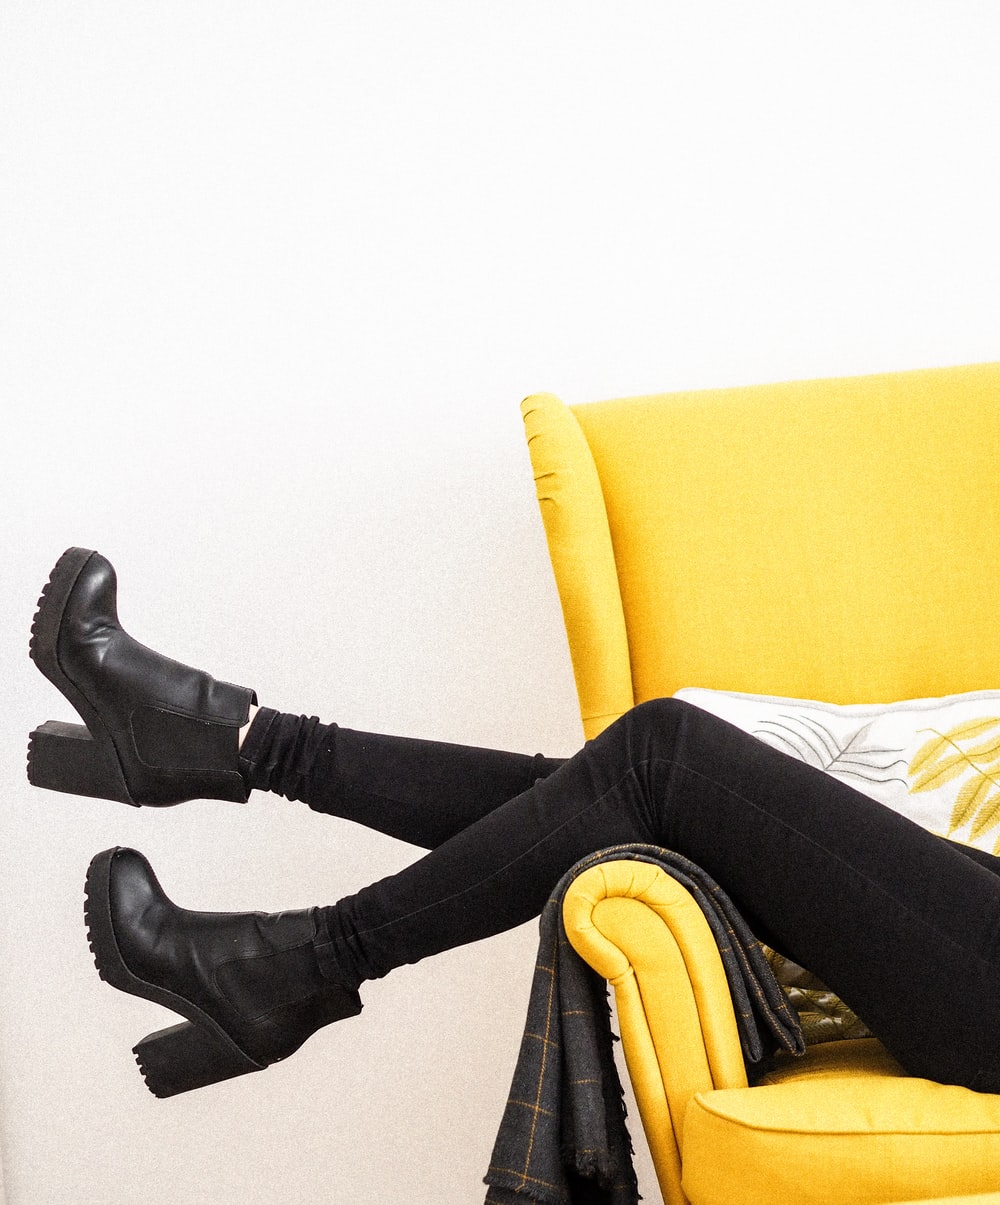 person in black leather boots sitting on yellow sofa